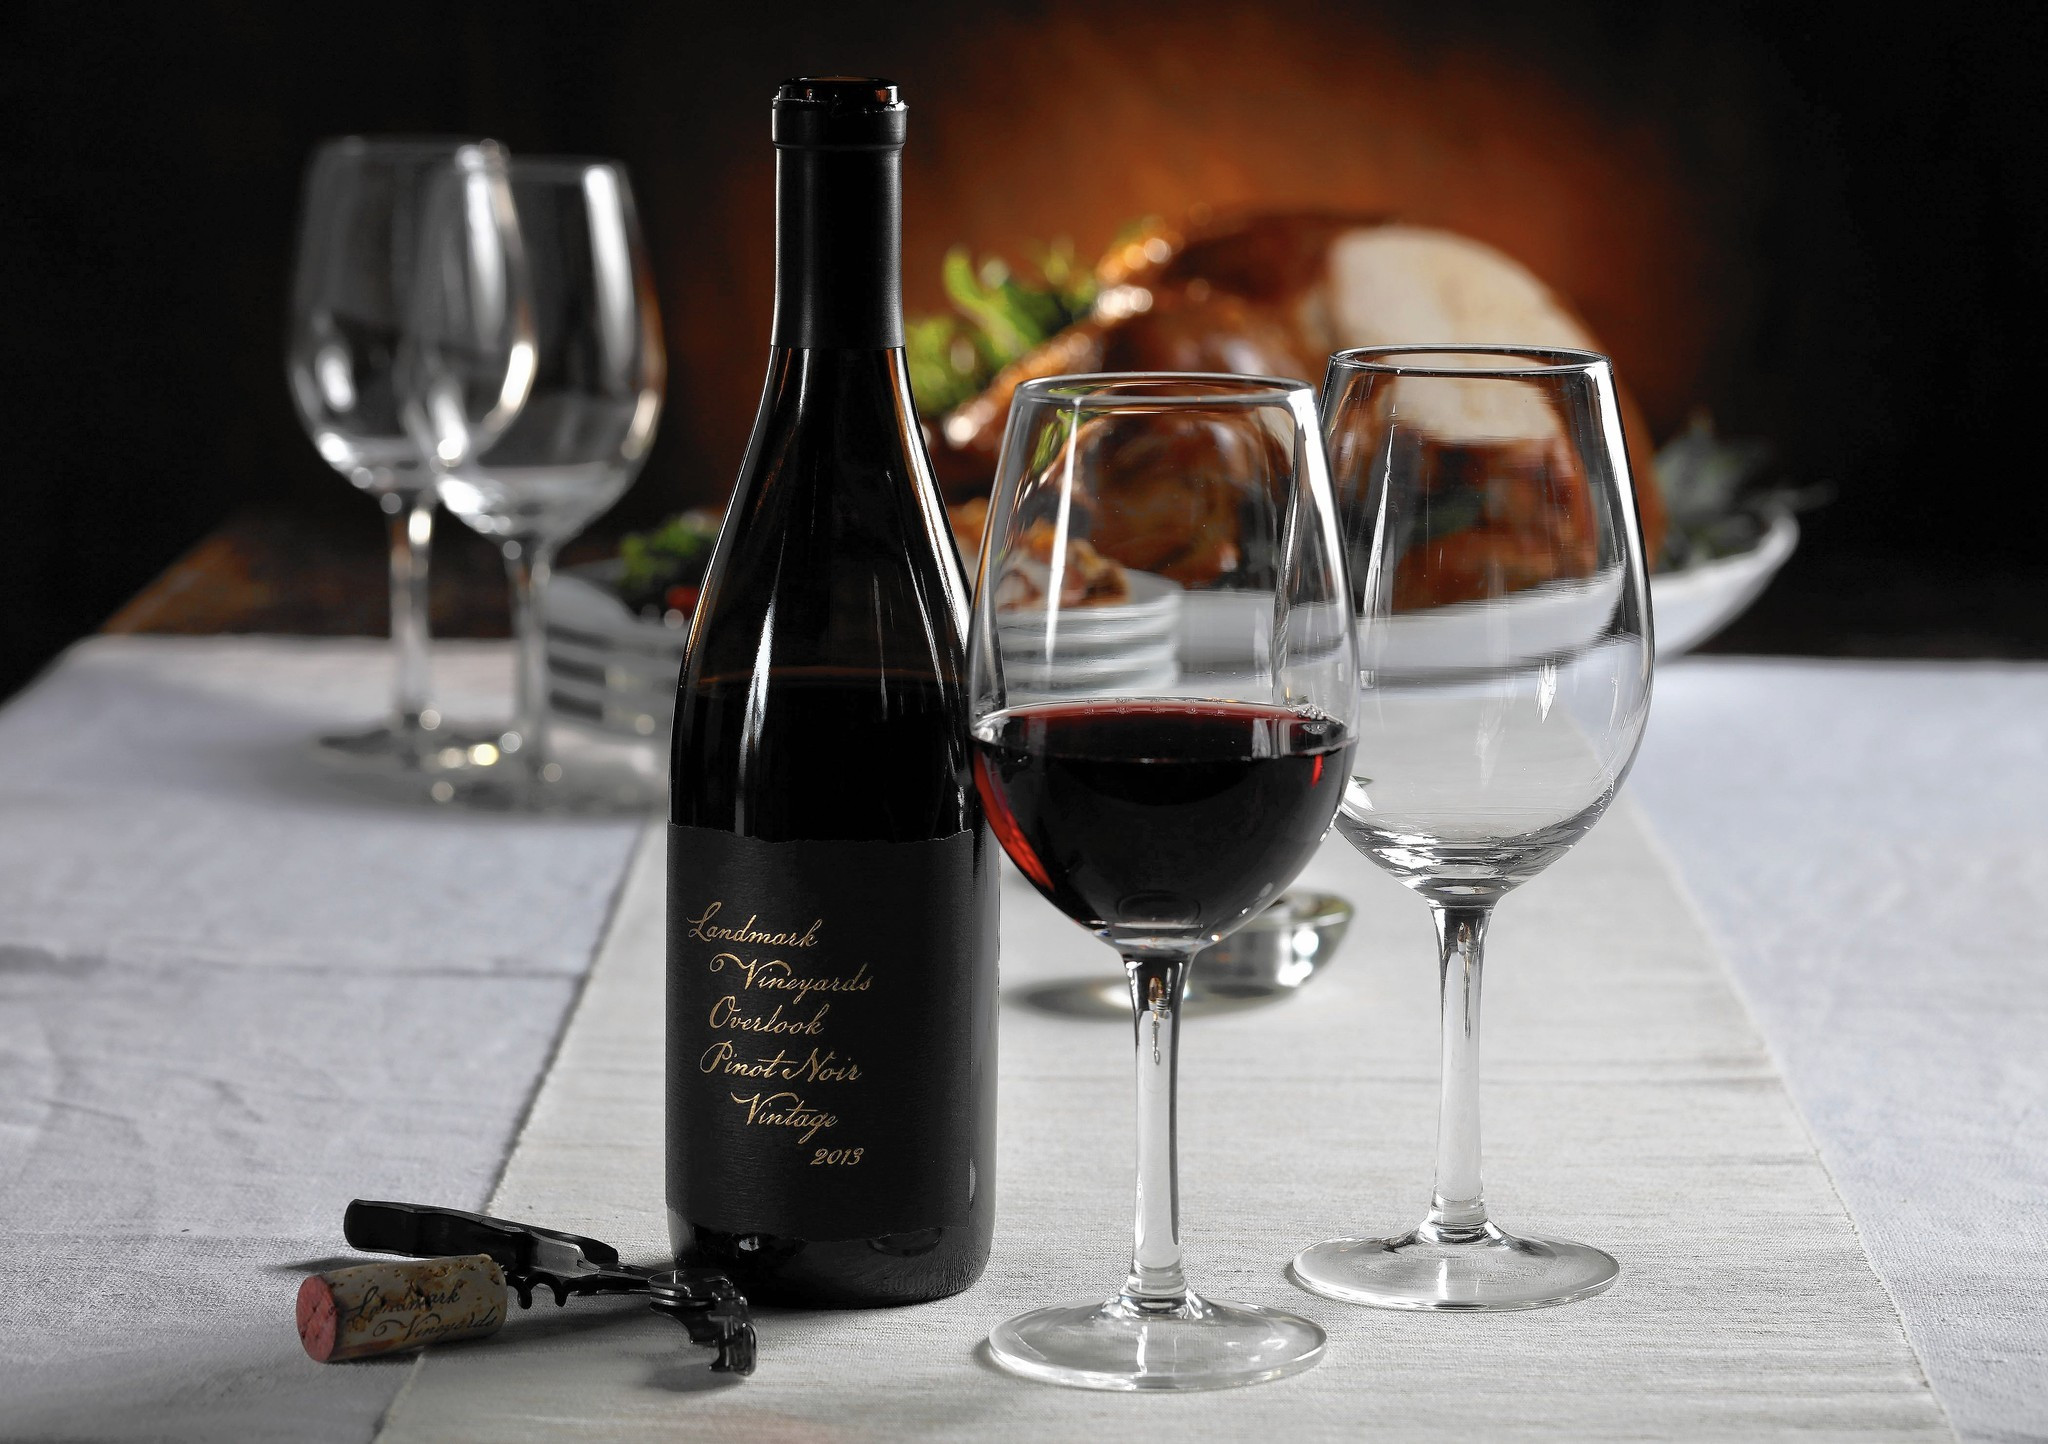 Wine For Thanksgiving Dinner  10 wines to pair with Thanksgiving dinner Chicago Tribune